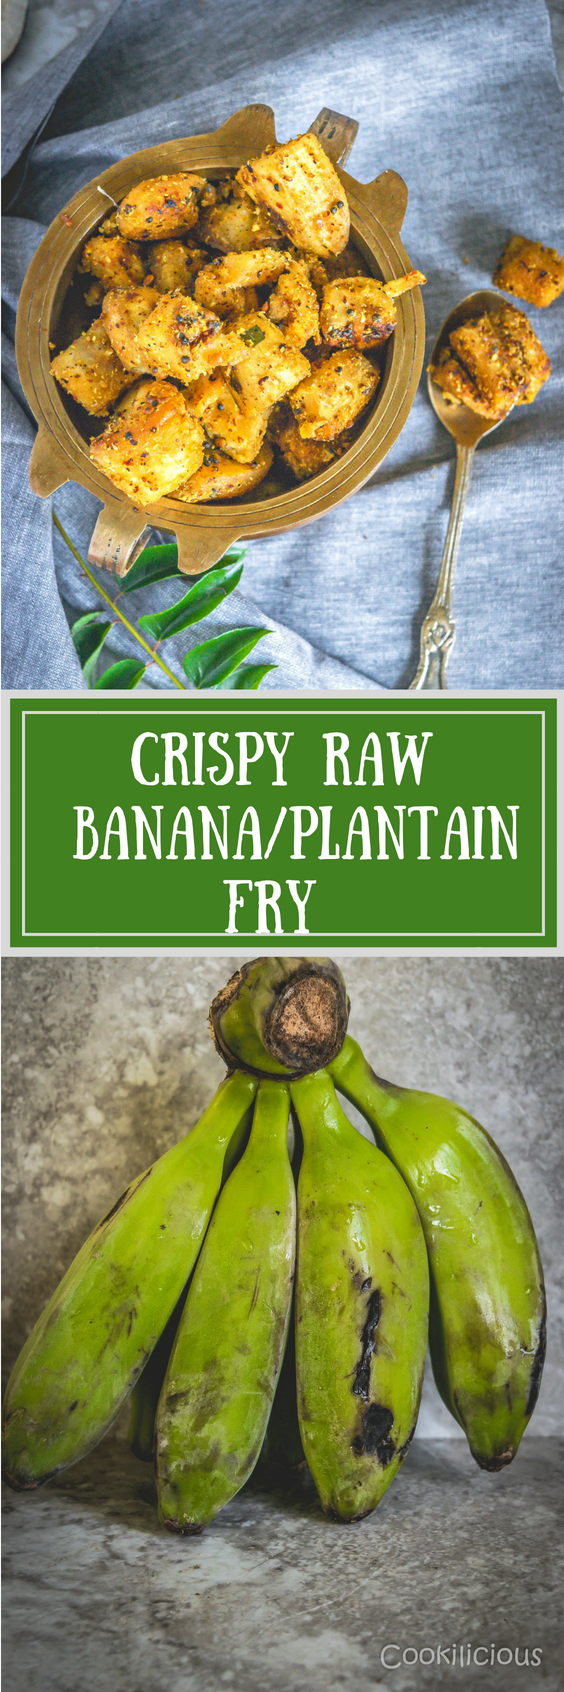 2 imges of Crispy Raw Banana/Plantain Fry Recipe with text in the middle